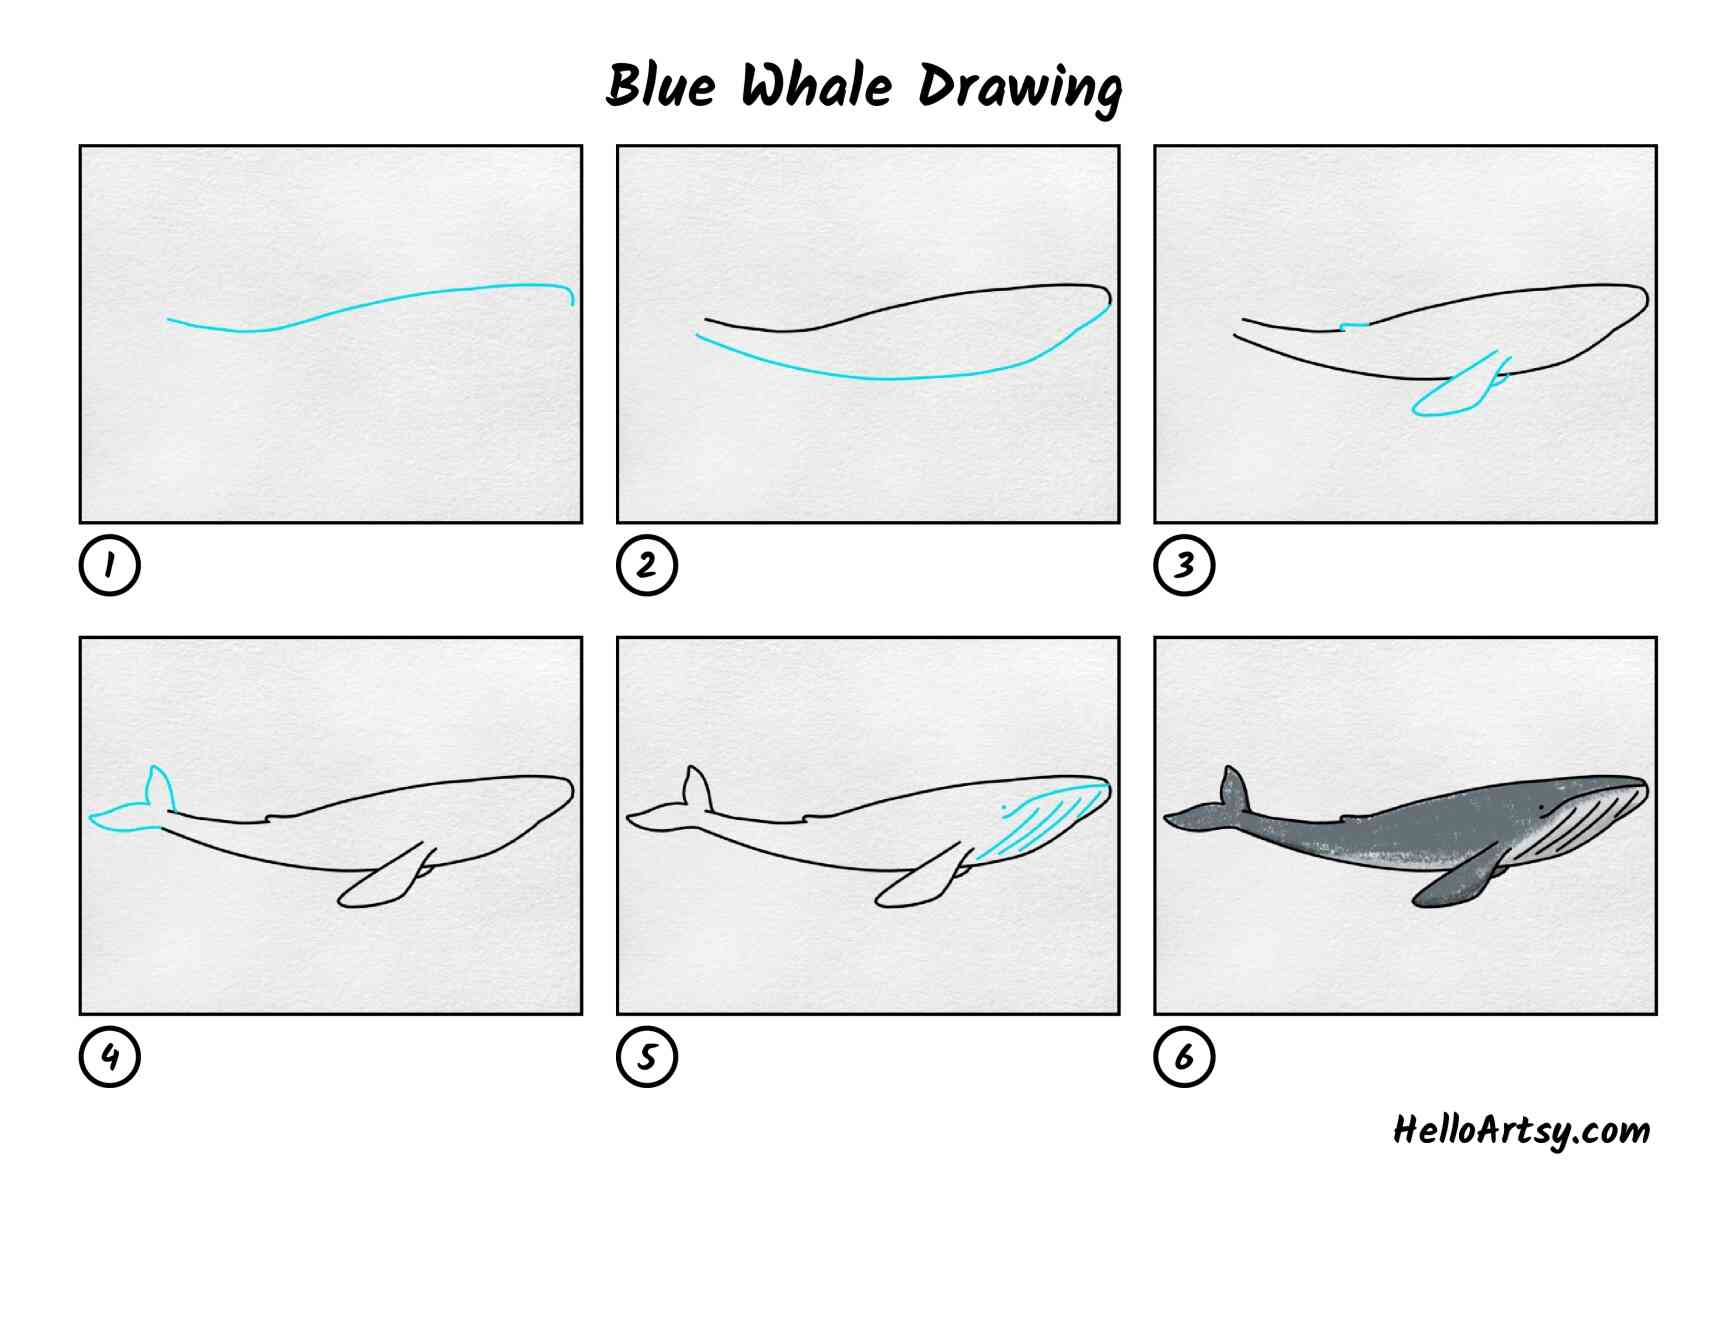 Blue Whale Drawing: All Steps